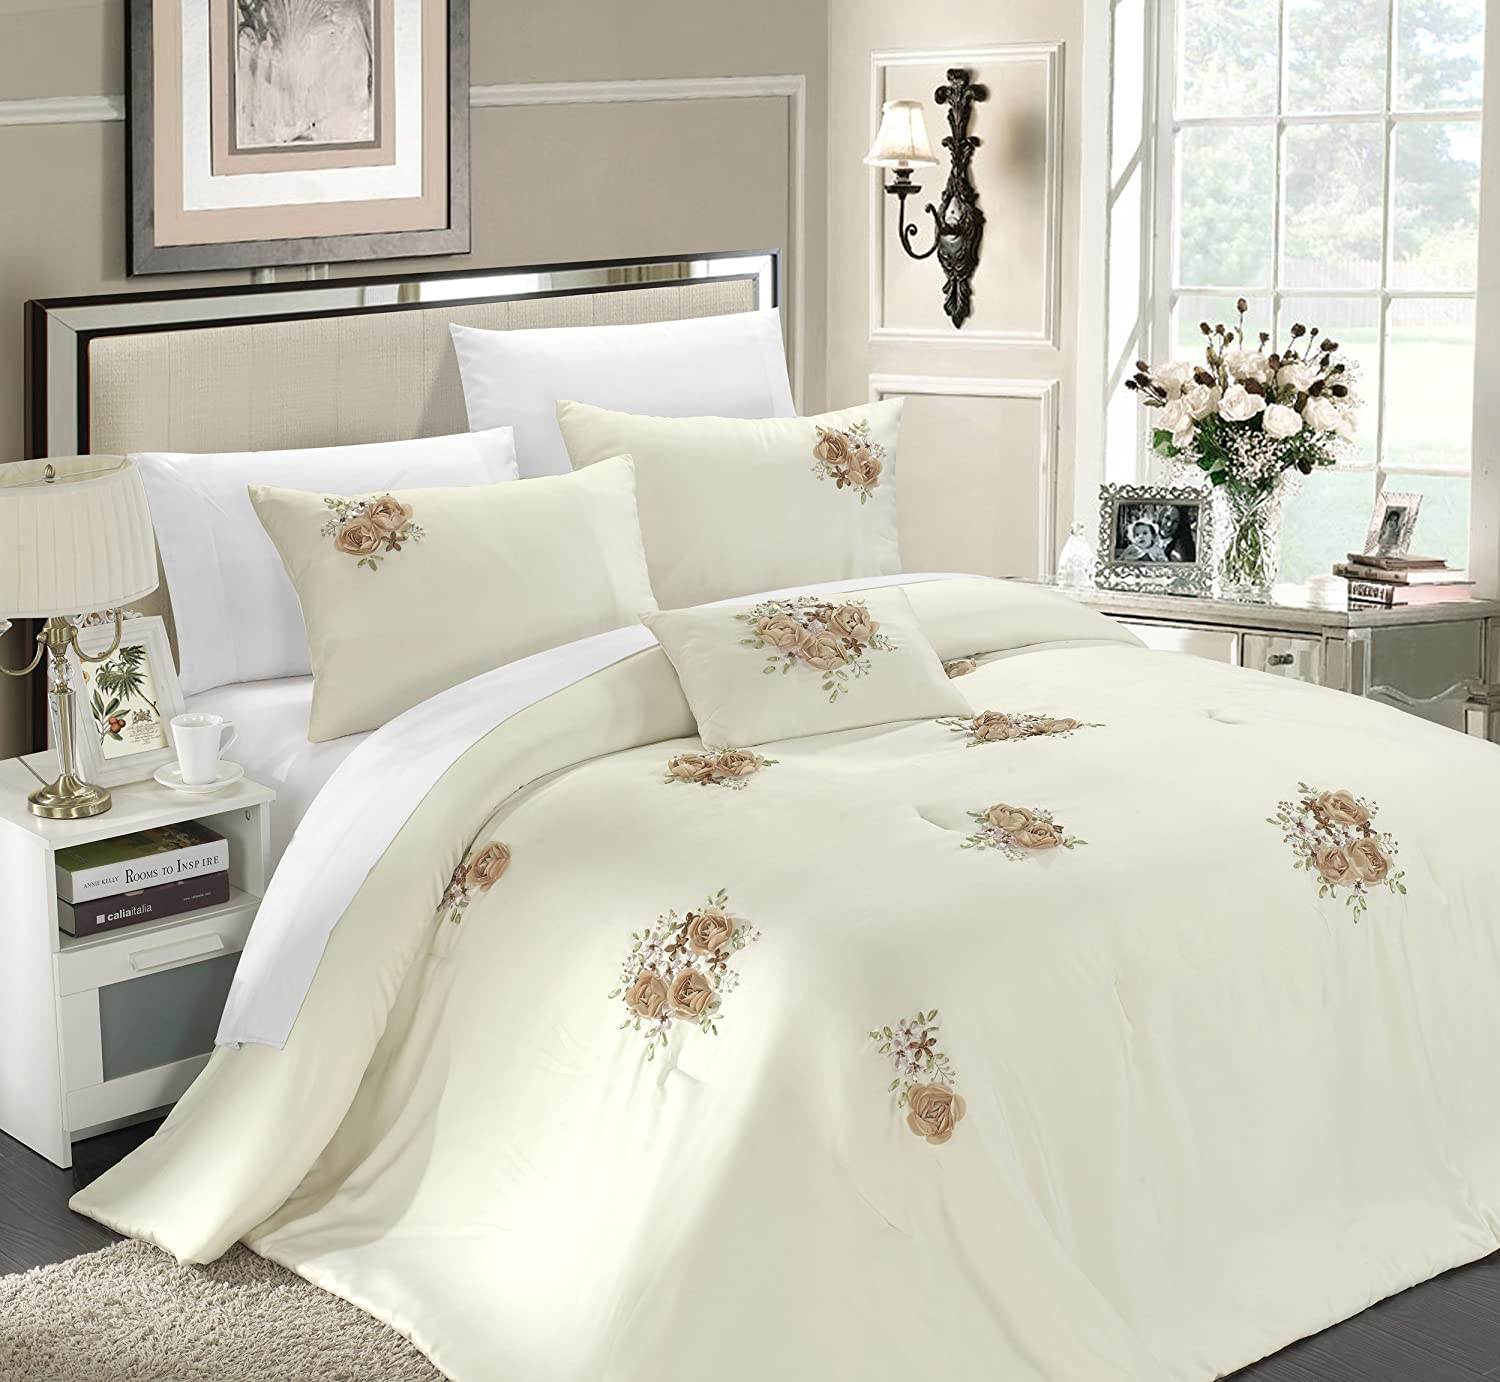 Amazon.com: Chic Home Rosetta 5-Piece Comforter Set, Queen, Beige ...